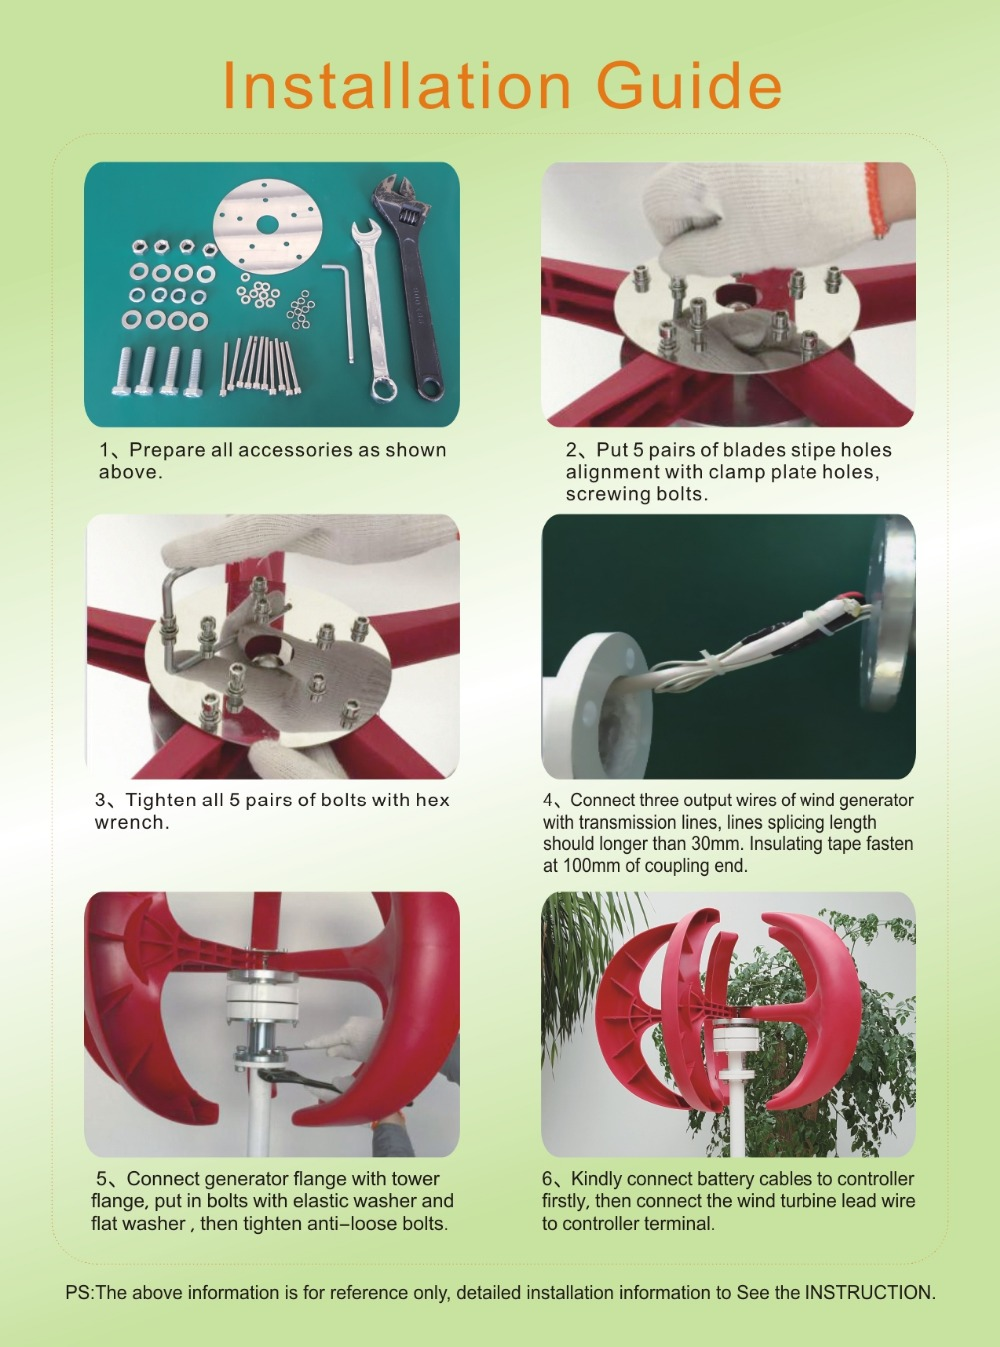 Installation Guide of vertical wind turbine